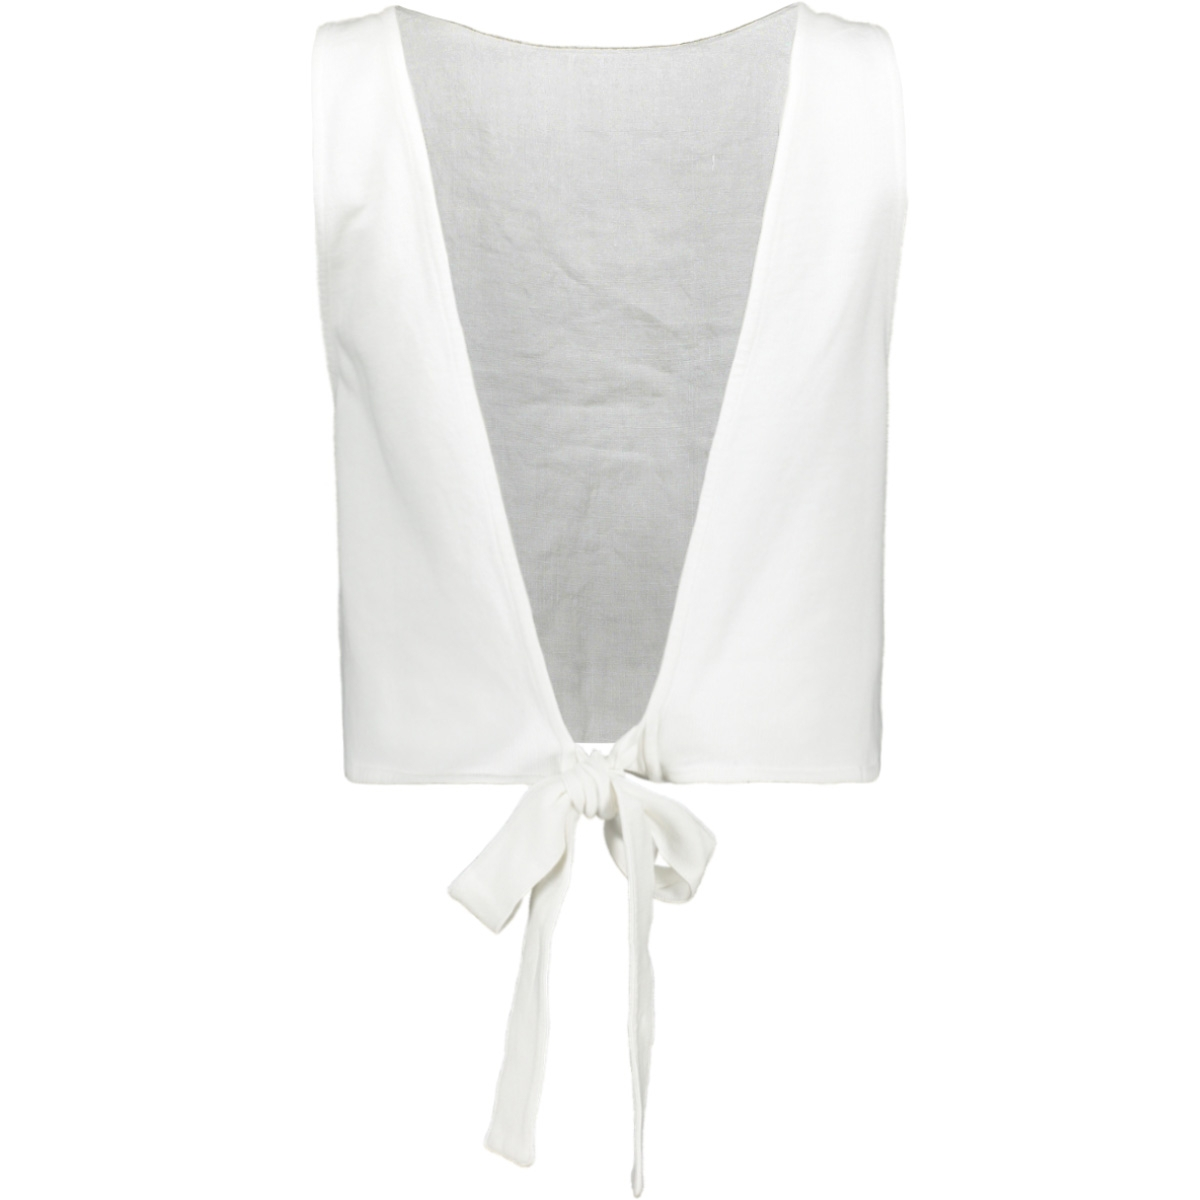 top knot linen 20 464 0201 10 days top 1001 white